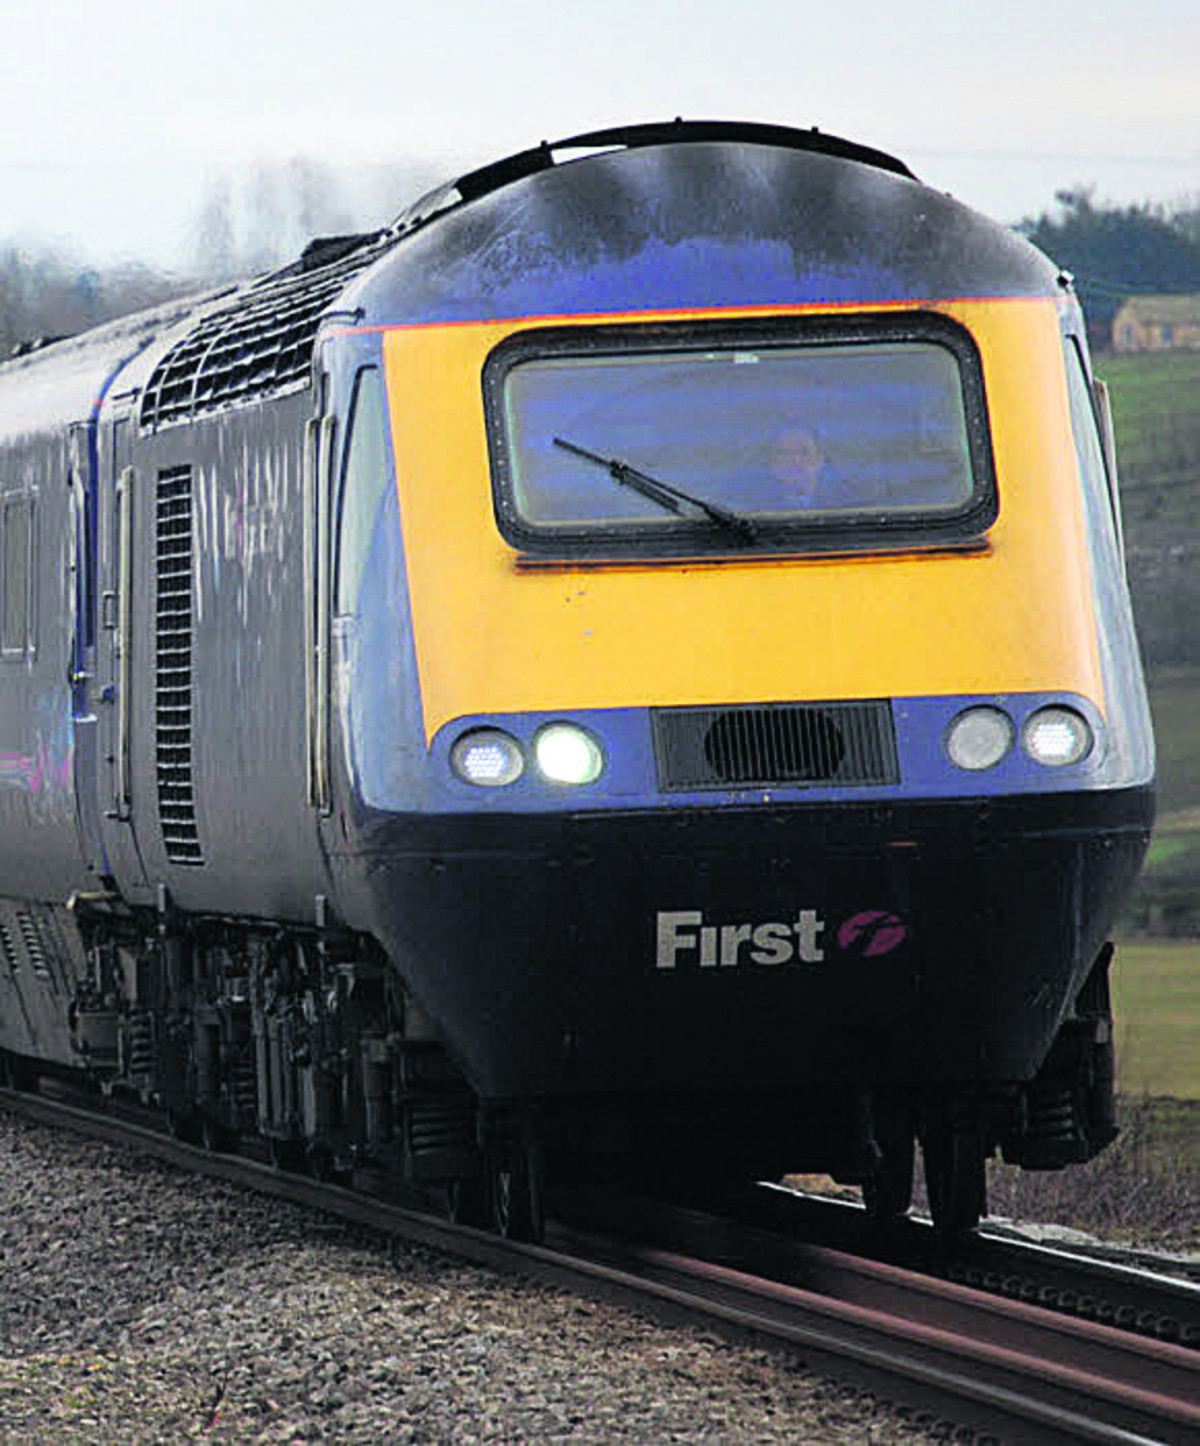 Signalling problems cause delays between Didcot Parkway and Swindon